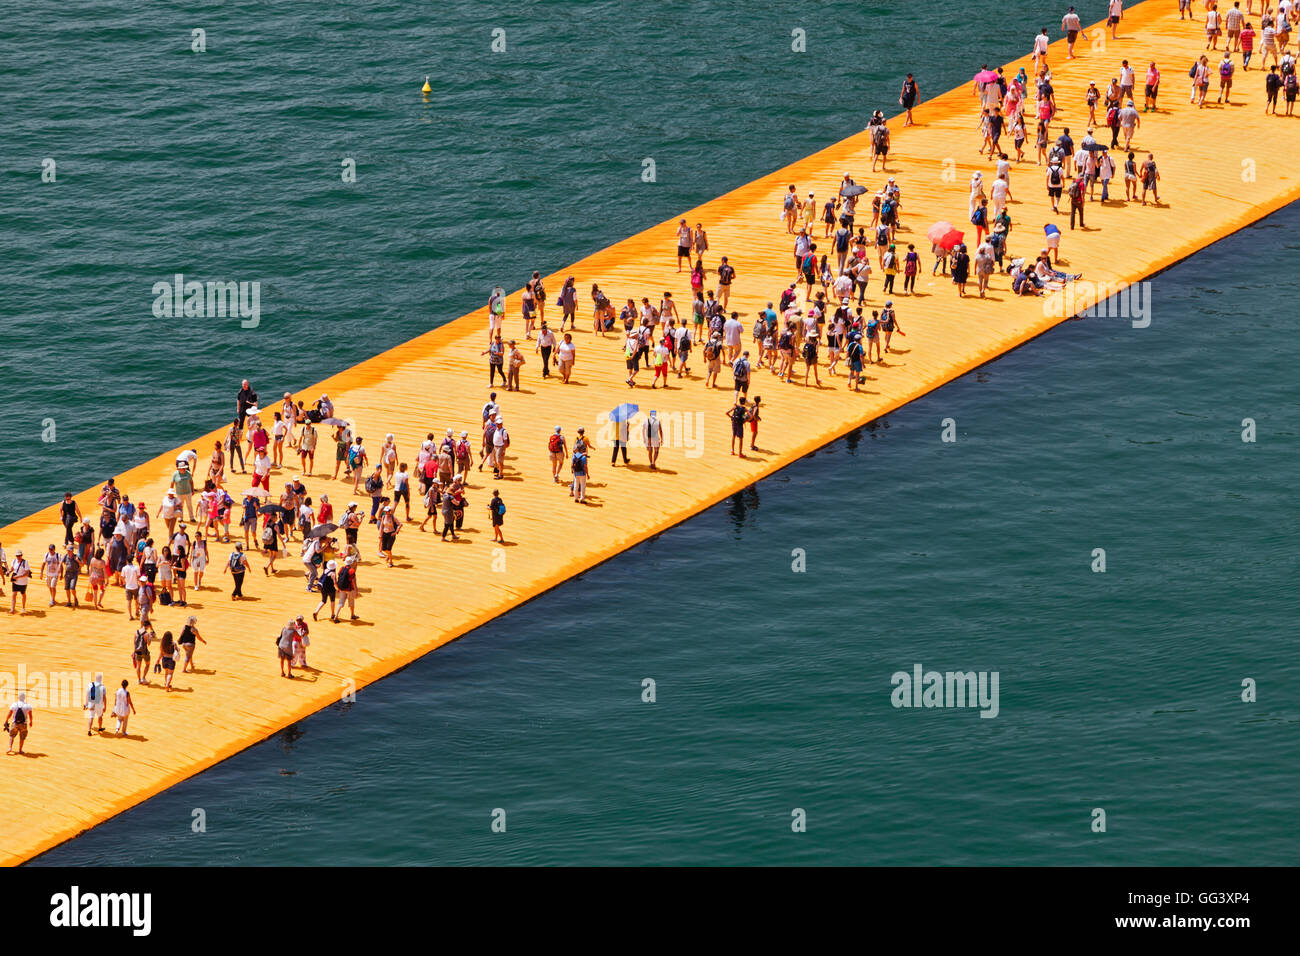 Floating Piers Project for Lake Iseo, Italy, by Christo and Jeanne-Claude. View from above of crowds on installation - Stock Image